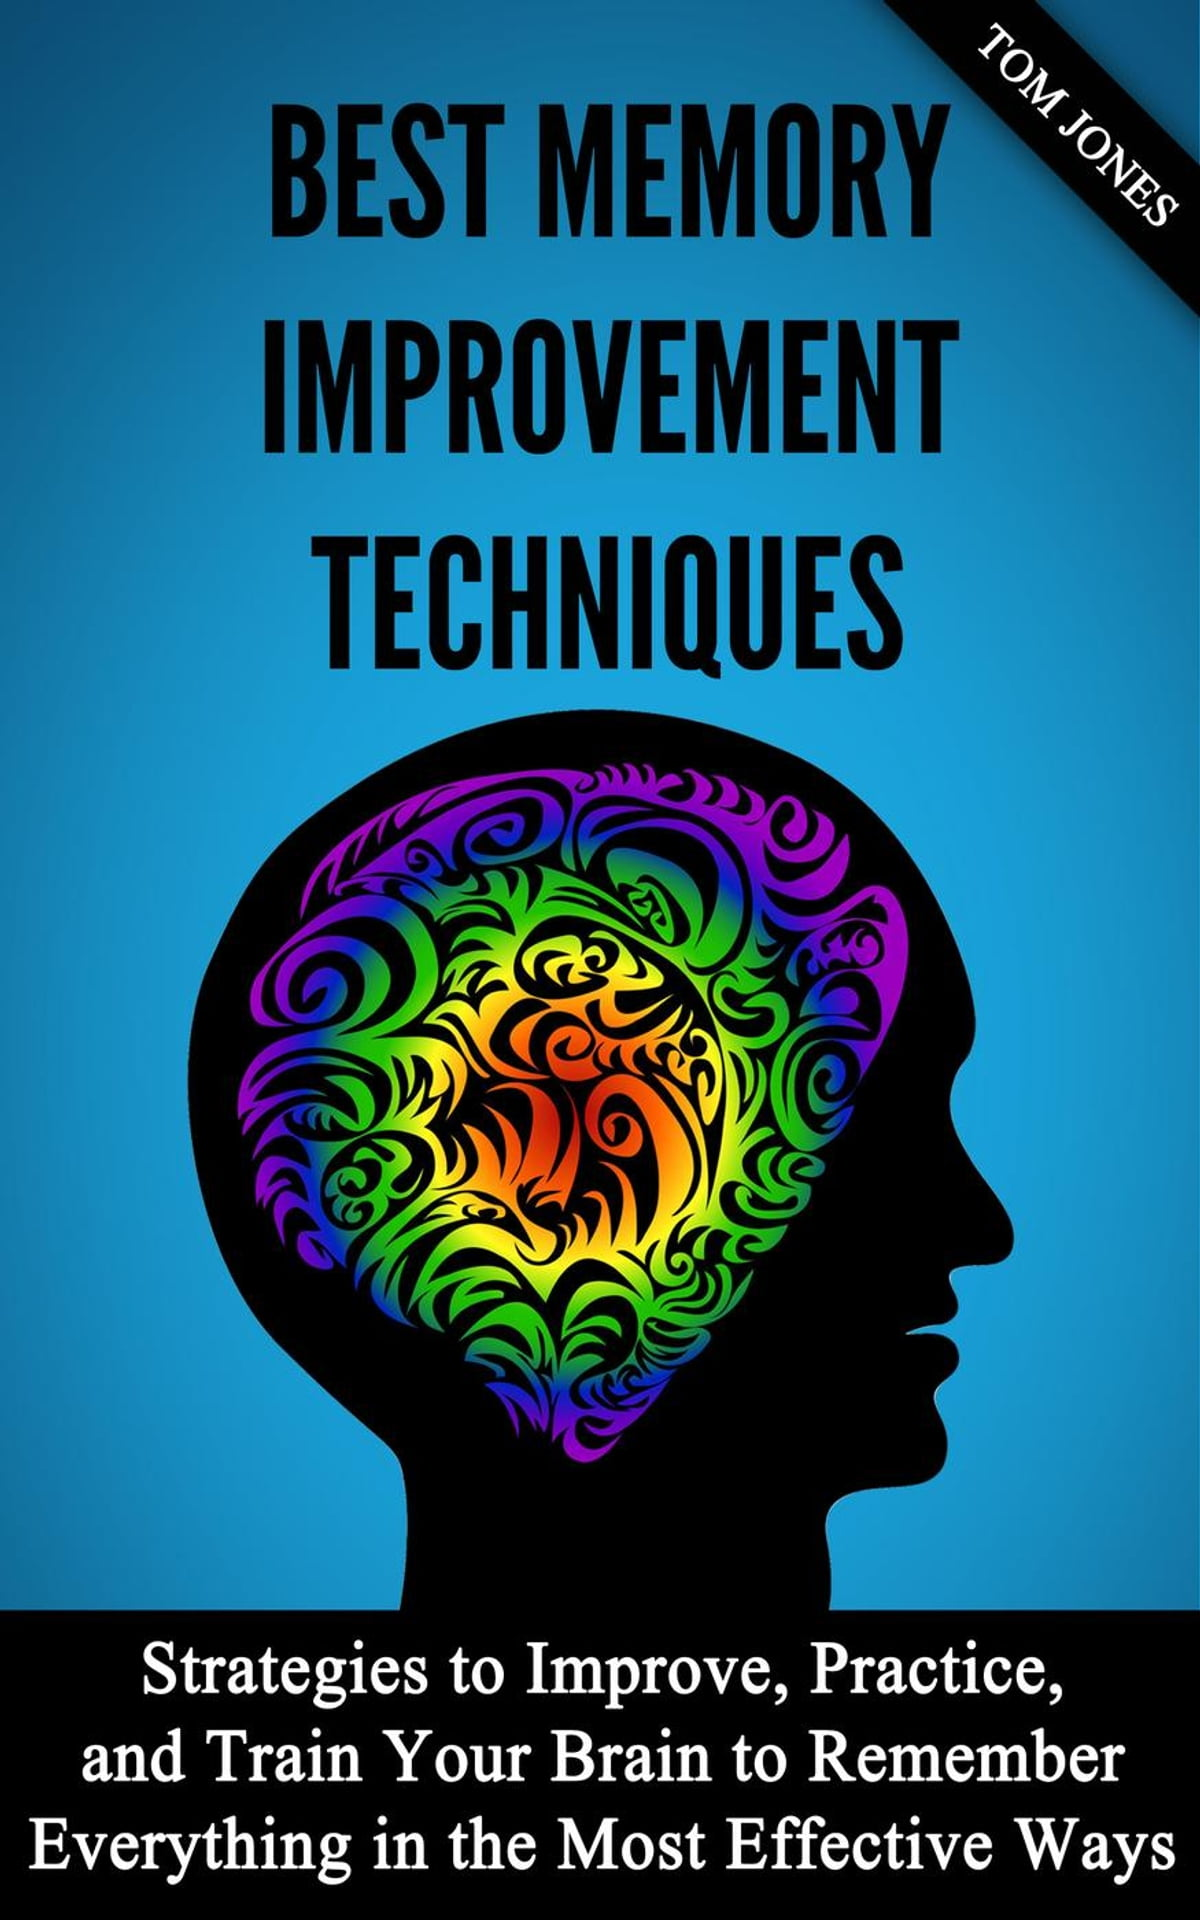 Memory Improvement: Strategies to Improve, Practice, and Train Your Brain  to Remember Everything in the Most Effective Ways eBook by Eric Grey ...